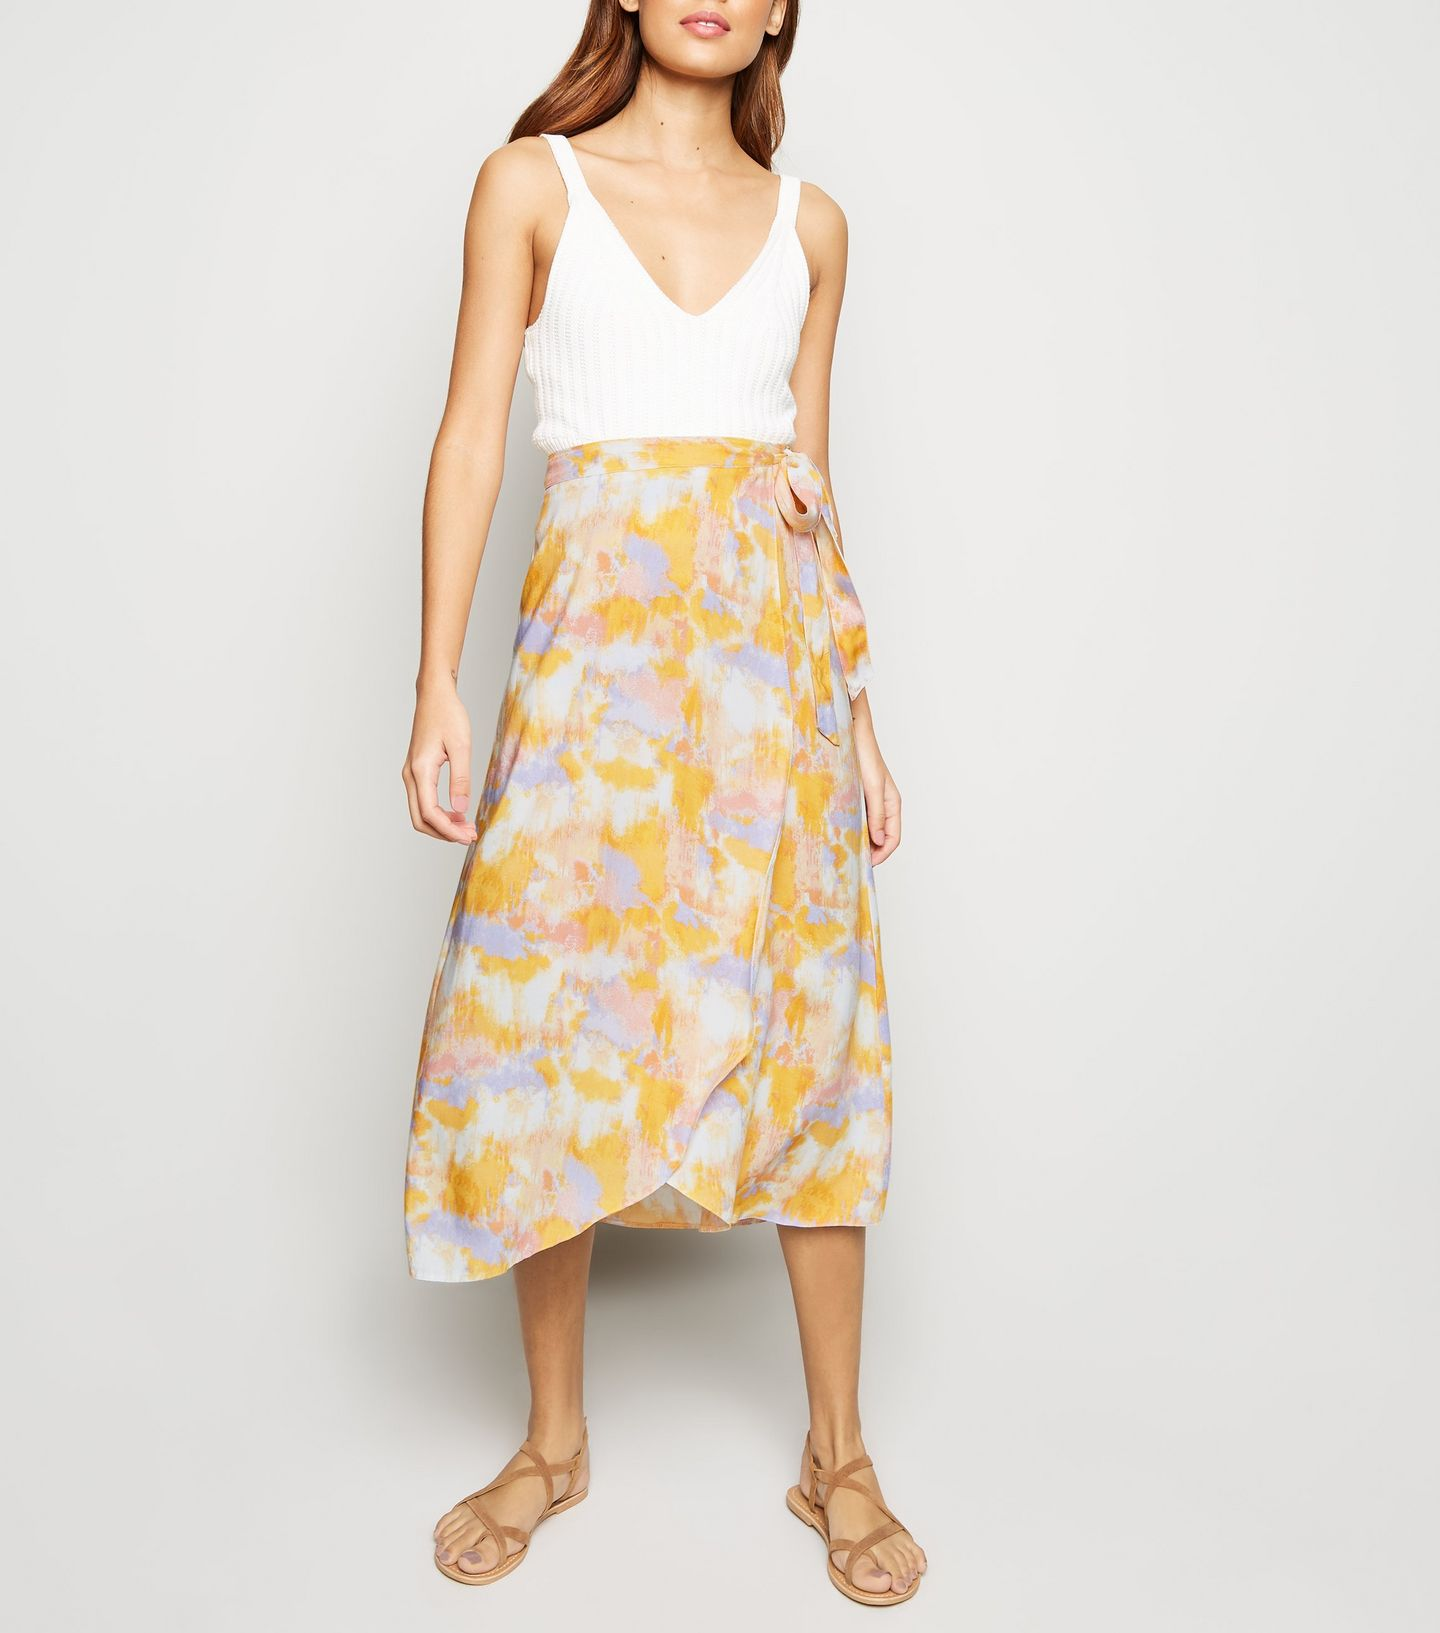 2a10a767638d ... this €22.99 white tie dye wrap midi-skirt - which we just know is going  to be be one of those pieces we'll be reaching for again and again this  spring.